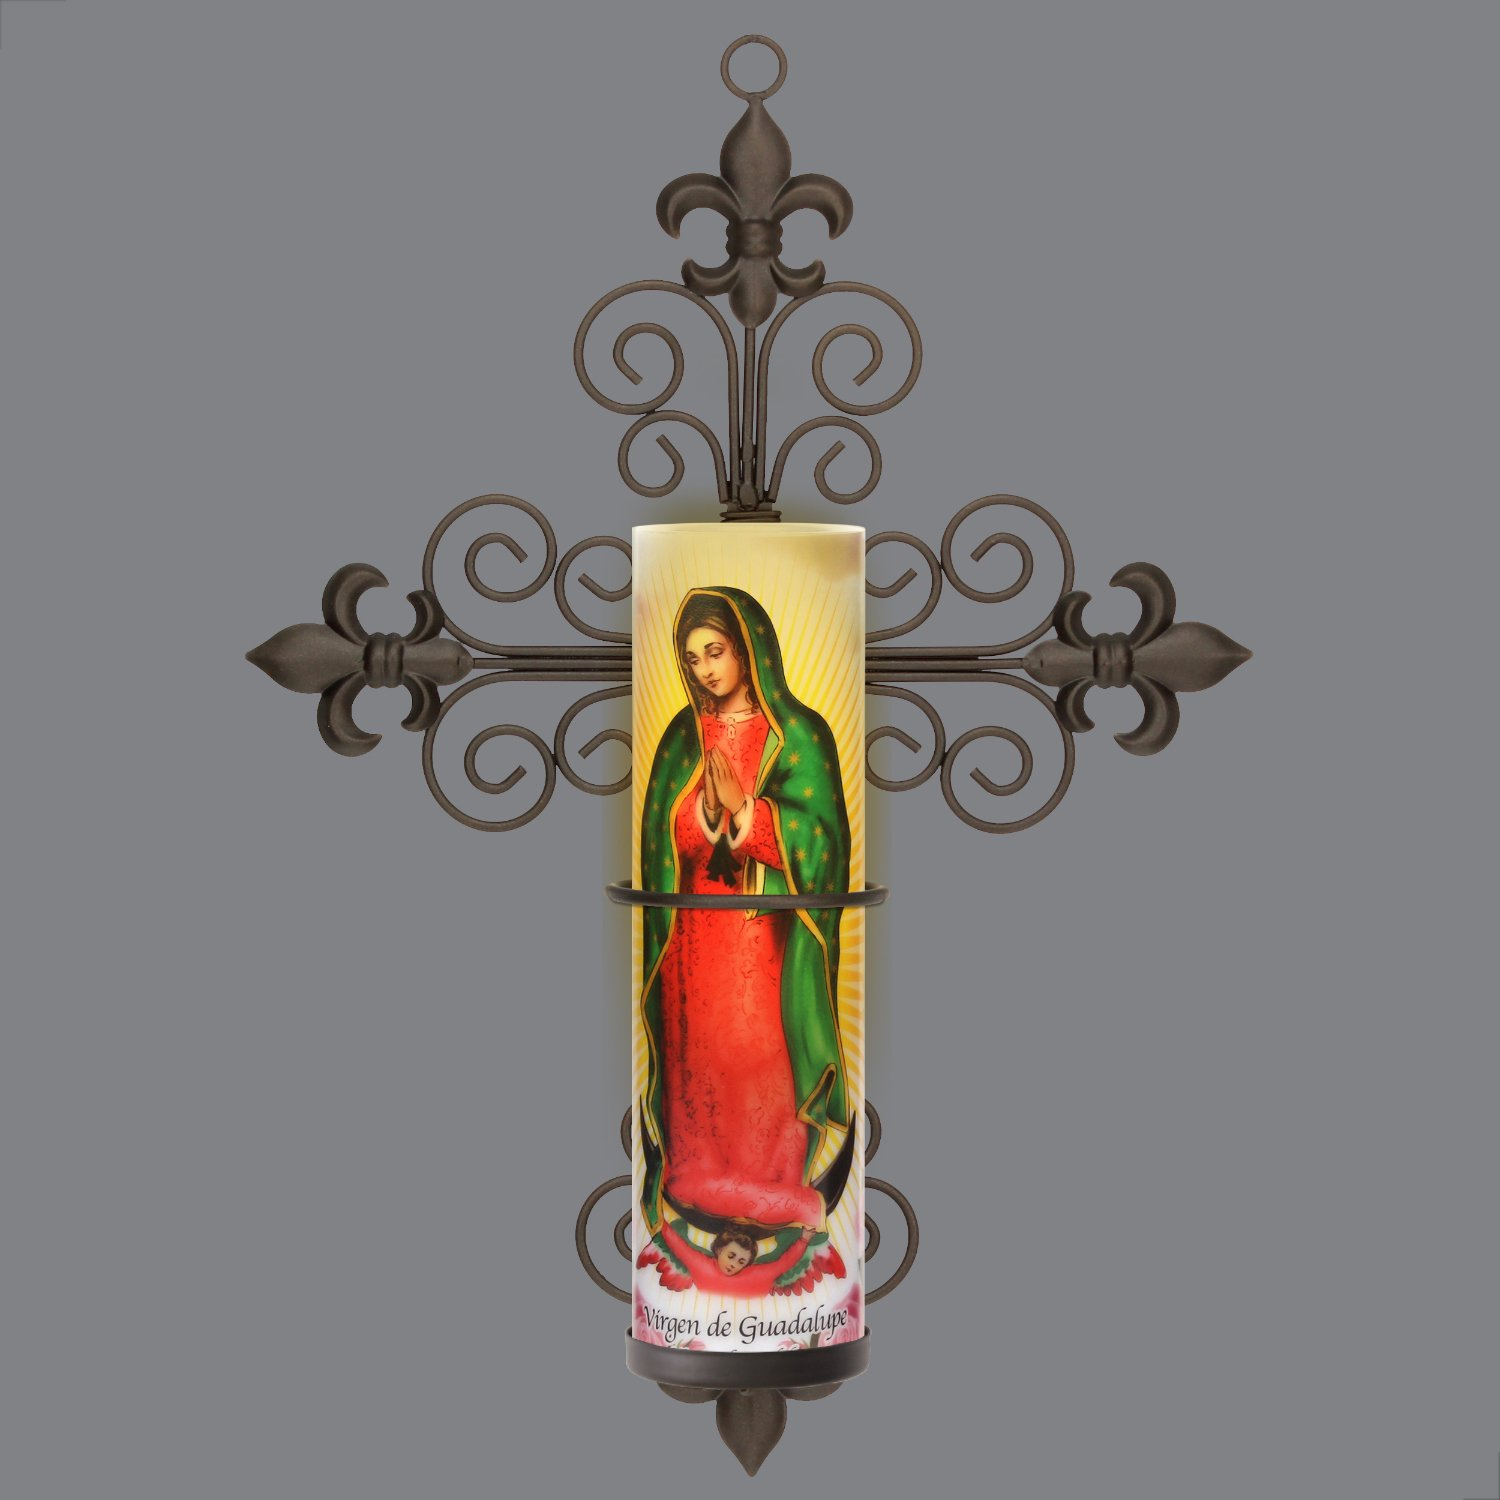 Virgin of Guadalupe LED Flameless Devotion Prayer Candle 4 Hour Timer, Religious Gift The Saints Gift Collection SB-5262A